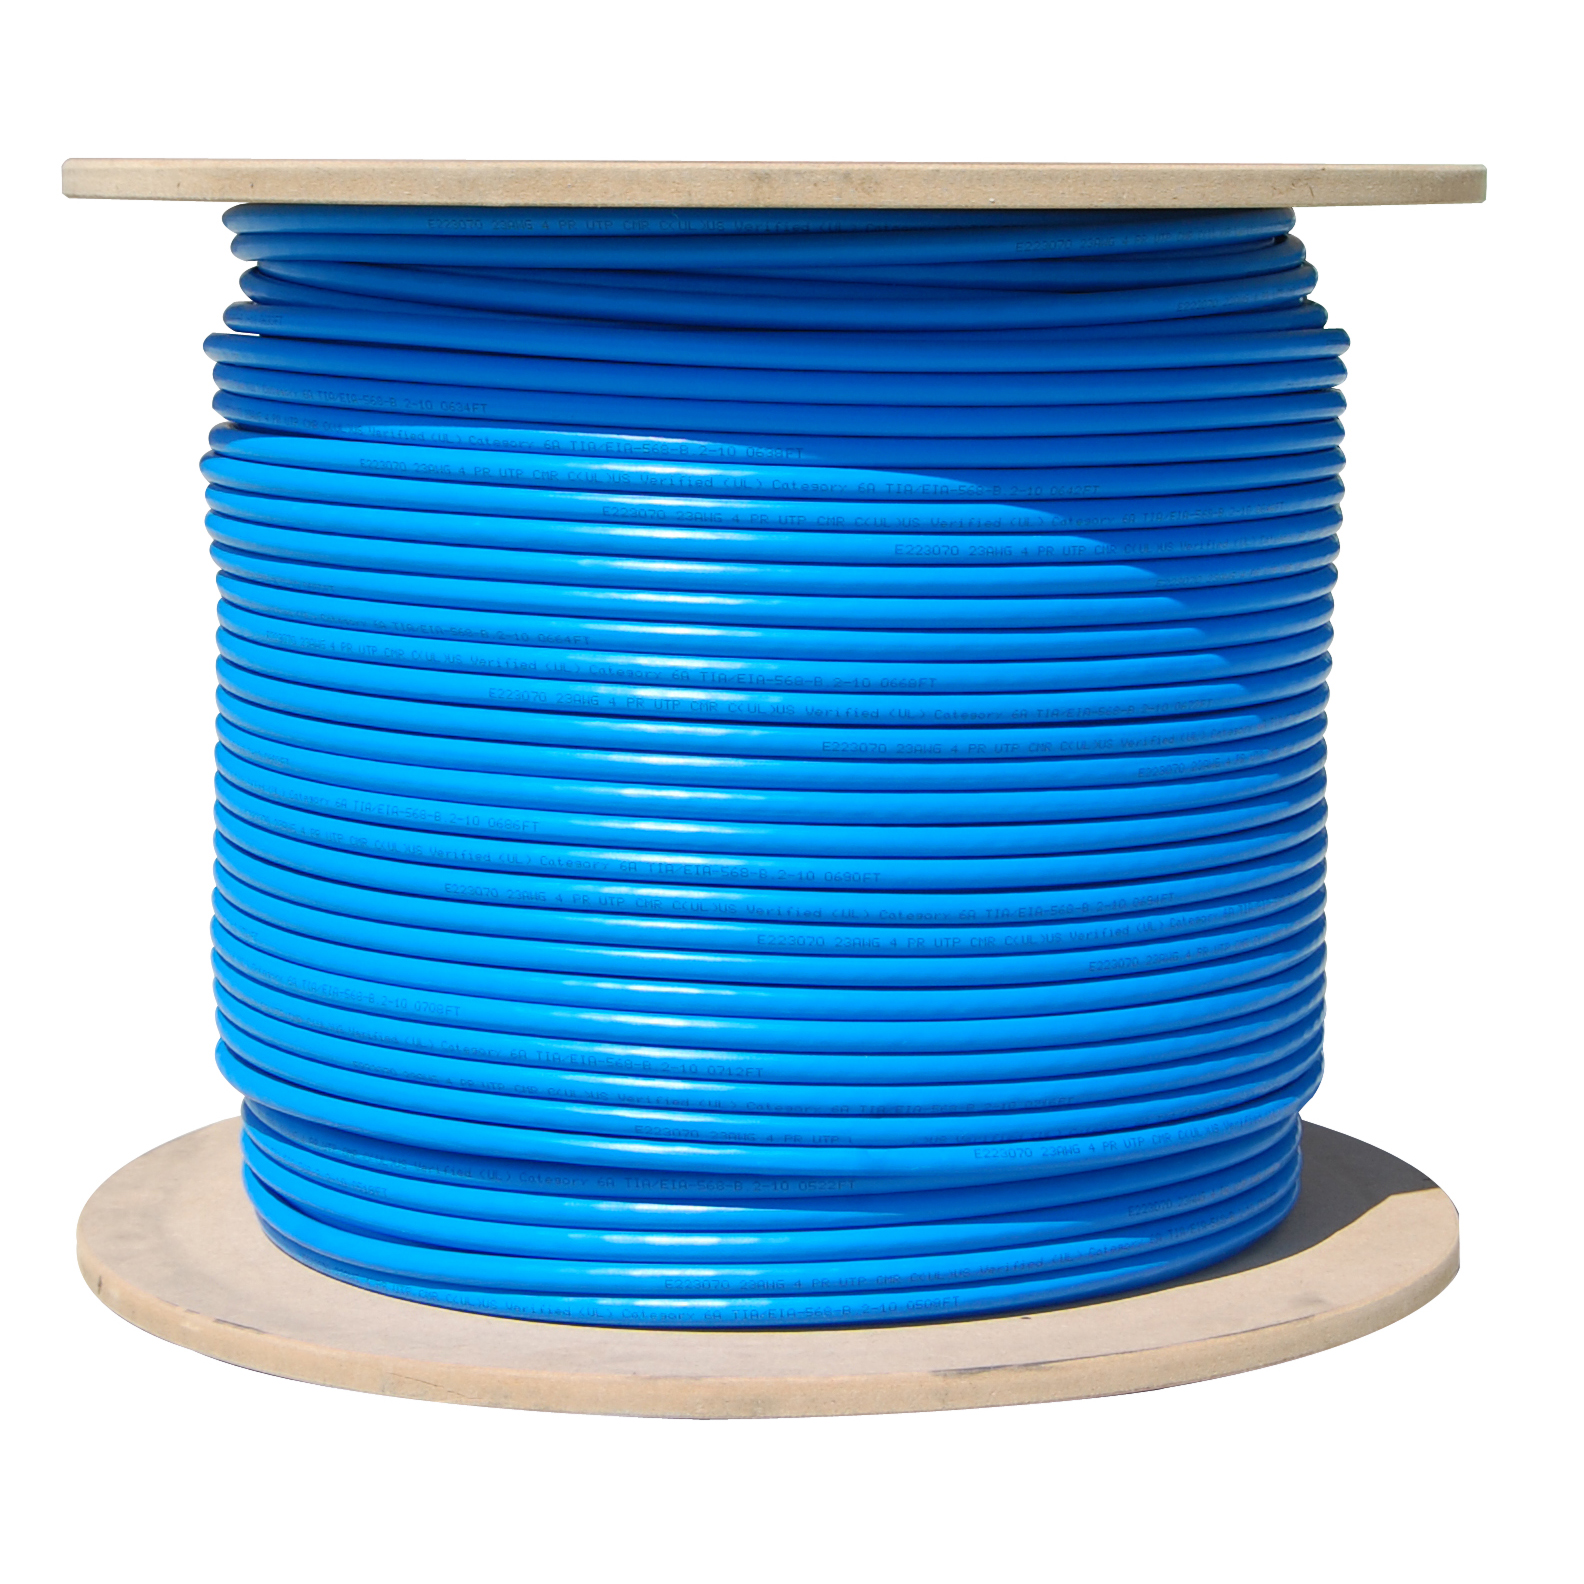 hight resolution of bulk cat6a blue ethernet cable 10 gig solid utp unshielded twisted pair